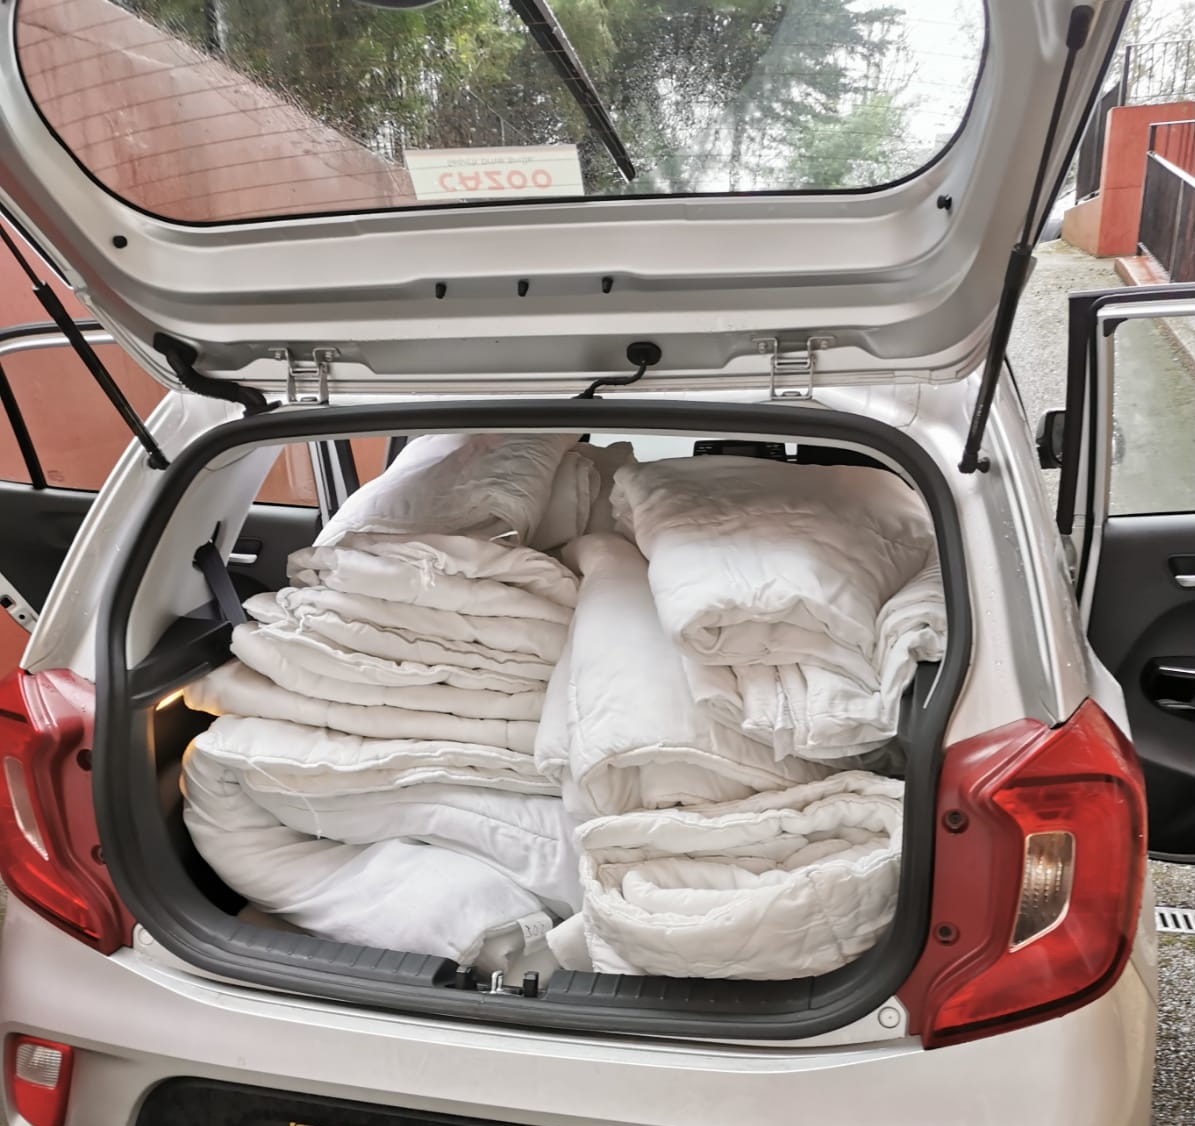 car boot filled with blankets and duvets